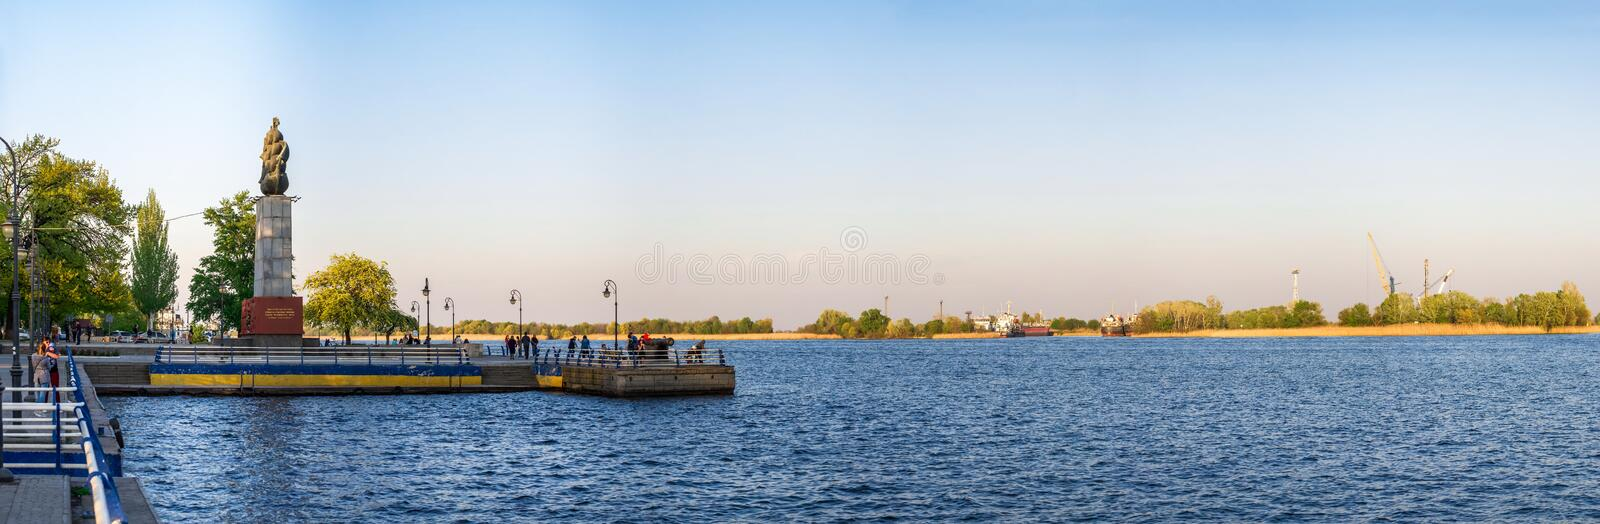 View of the Dnieper River in Kherson, Ukraine stock photography